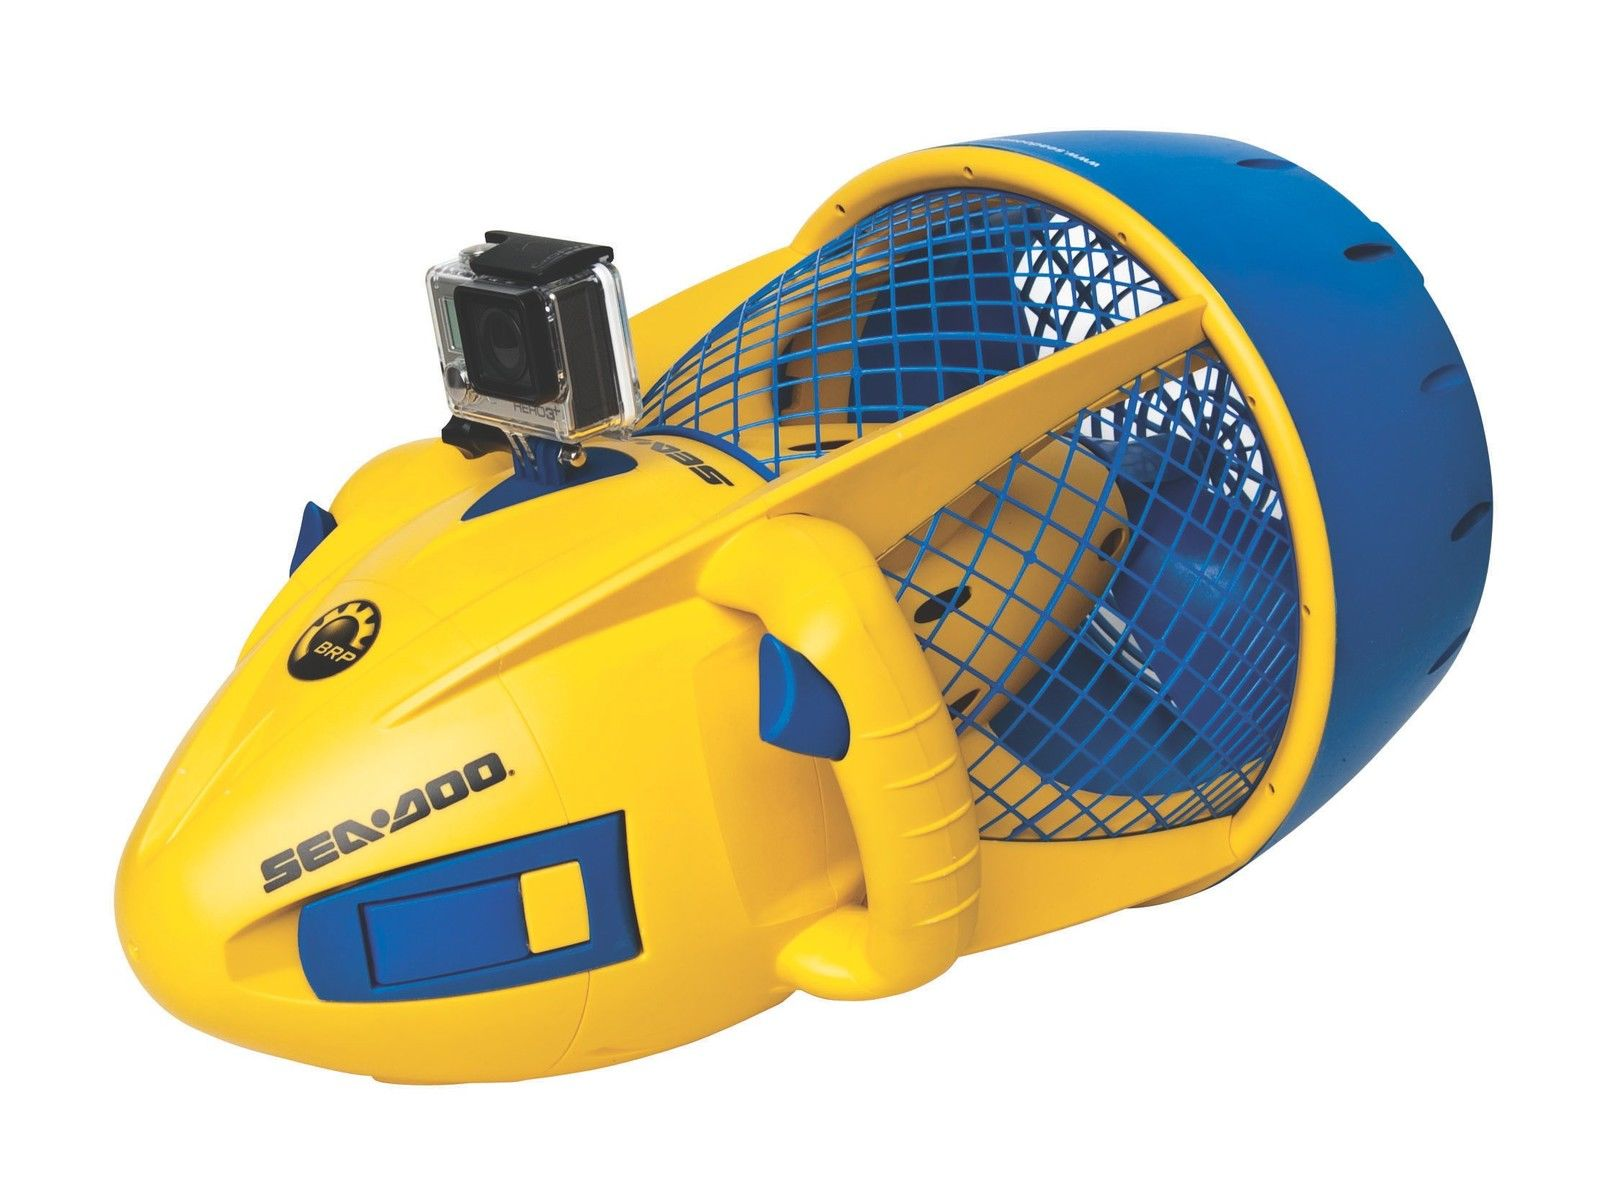 Sea doo dolphin sea scooter review underwater sea for Dive scooter